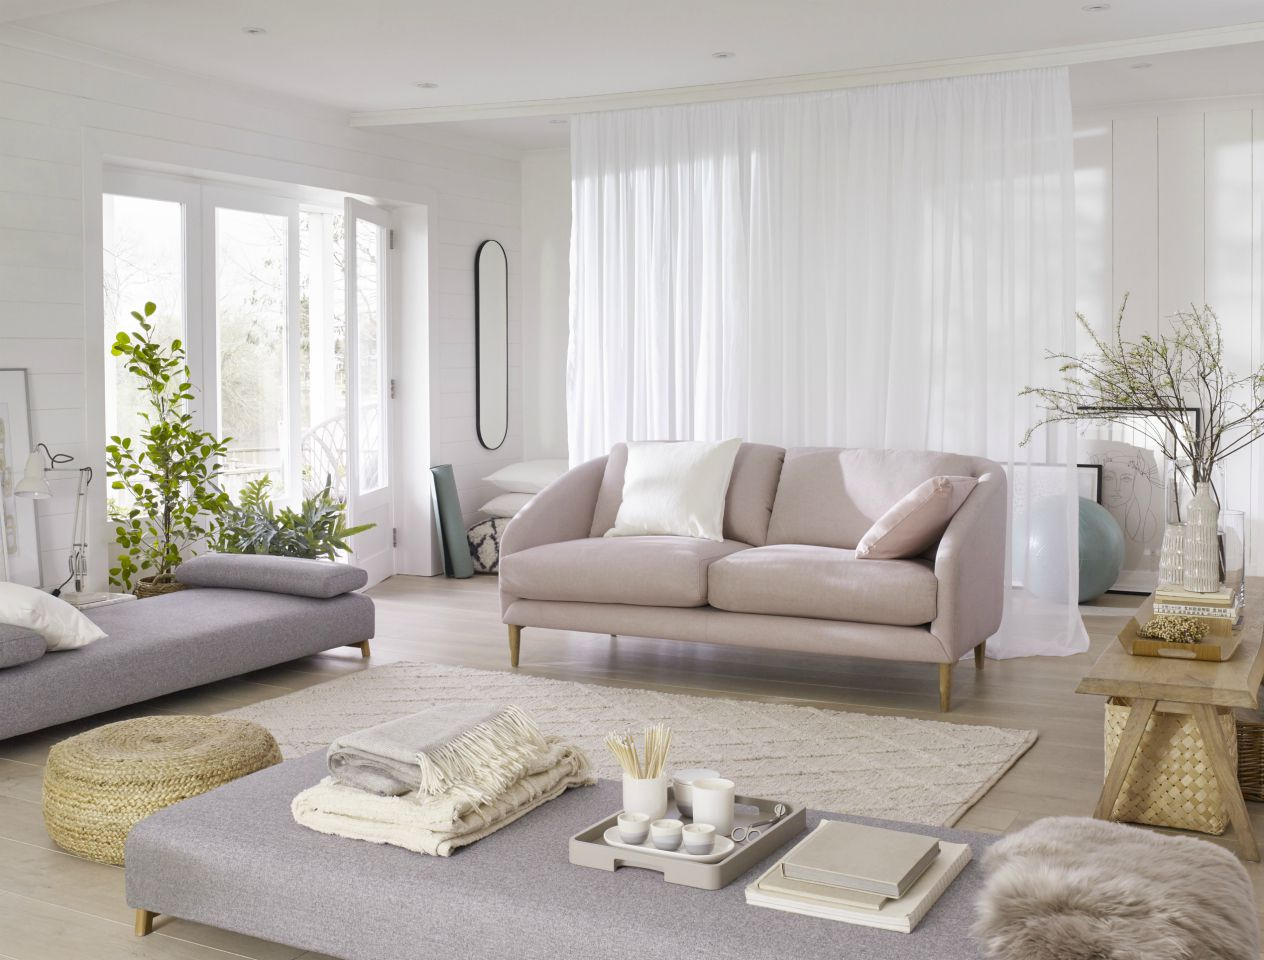 Create a wellbeing living room  John Lewis & Partners